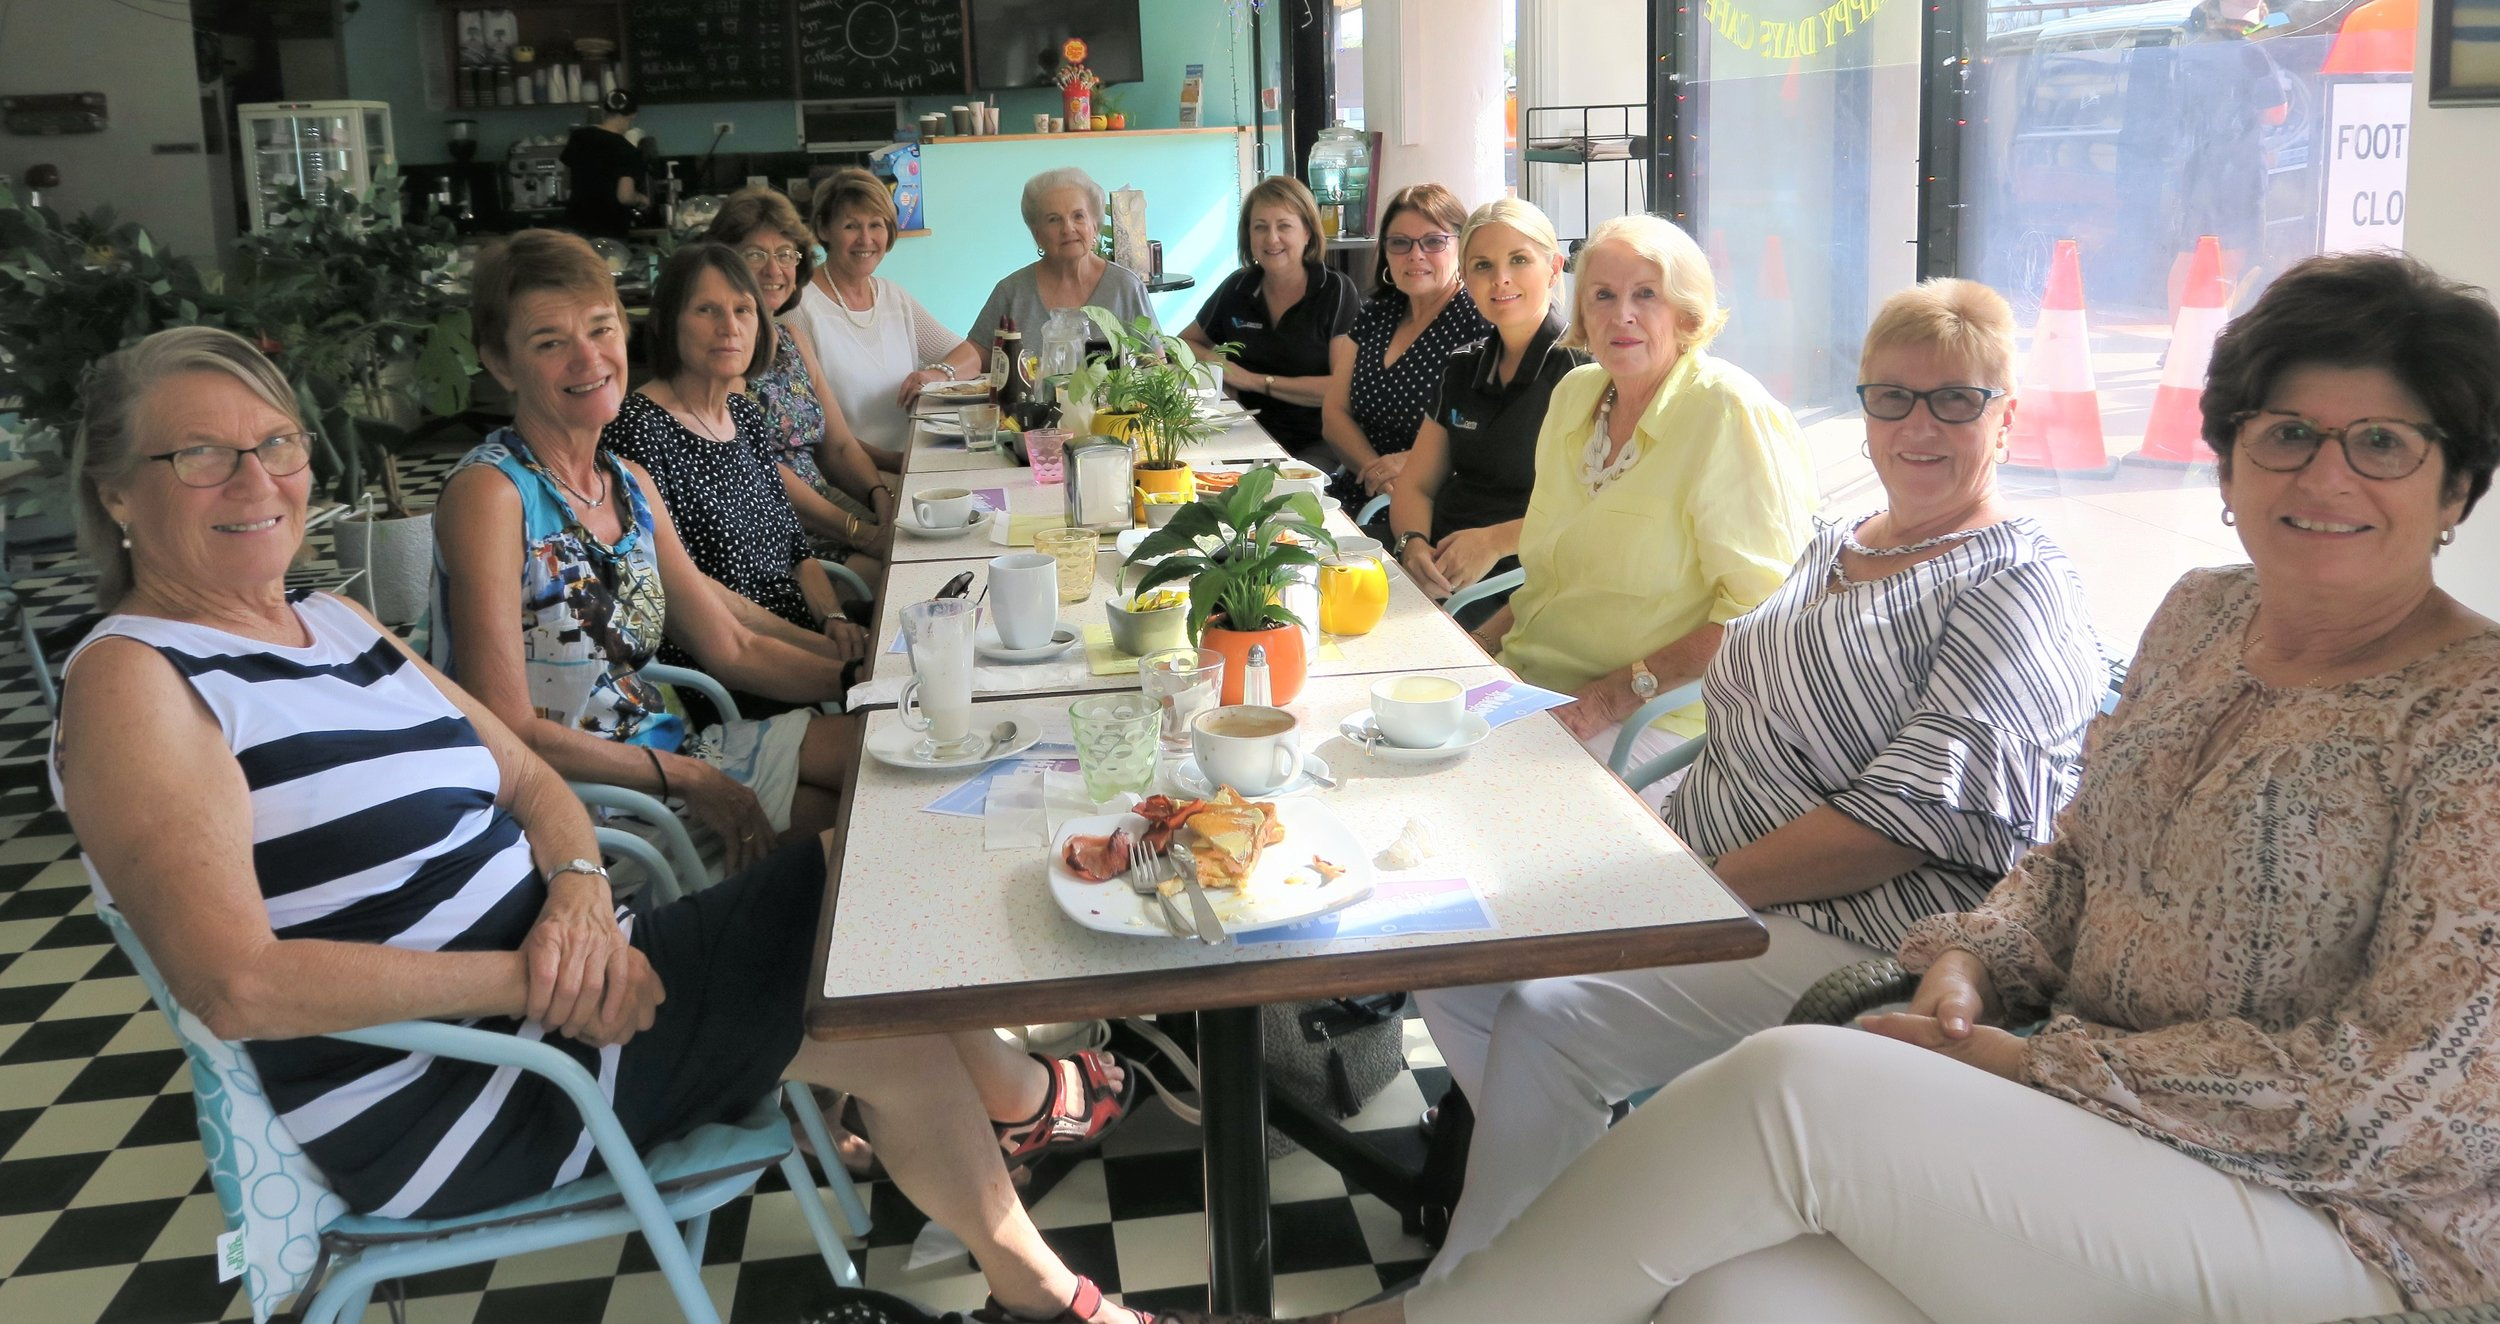 Lesley Muir (Pictured at head of table) gathers with friends at Caloundra's Happy Days Cafe to celebrate International Women's Day.